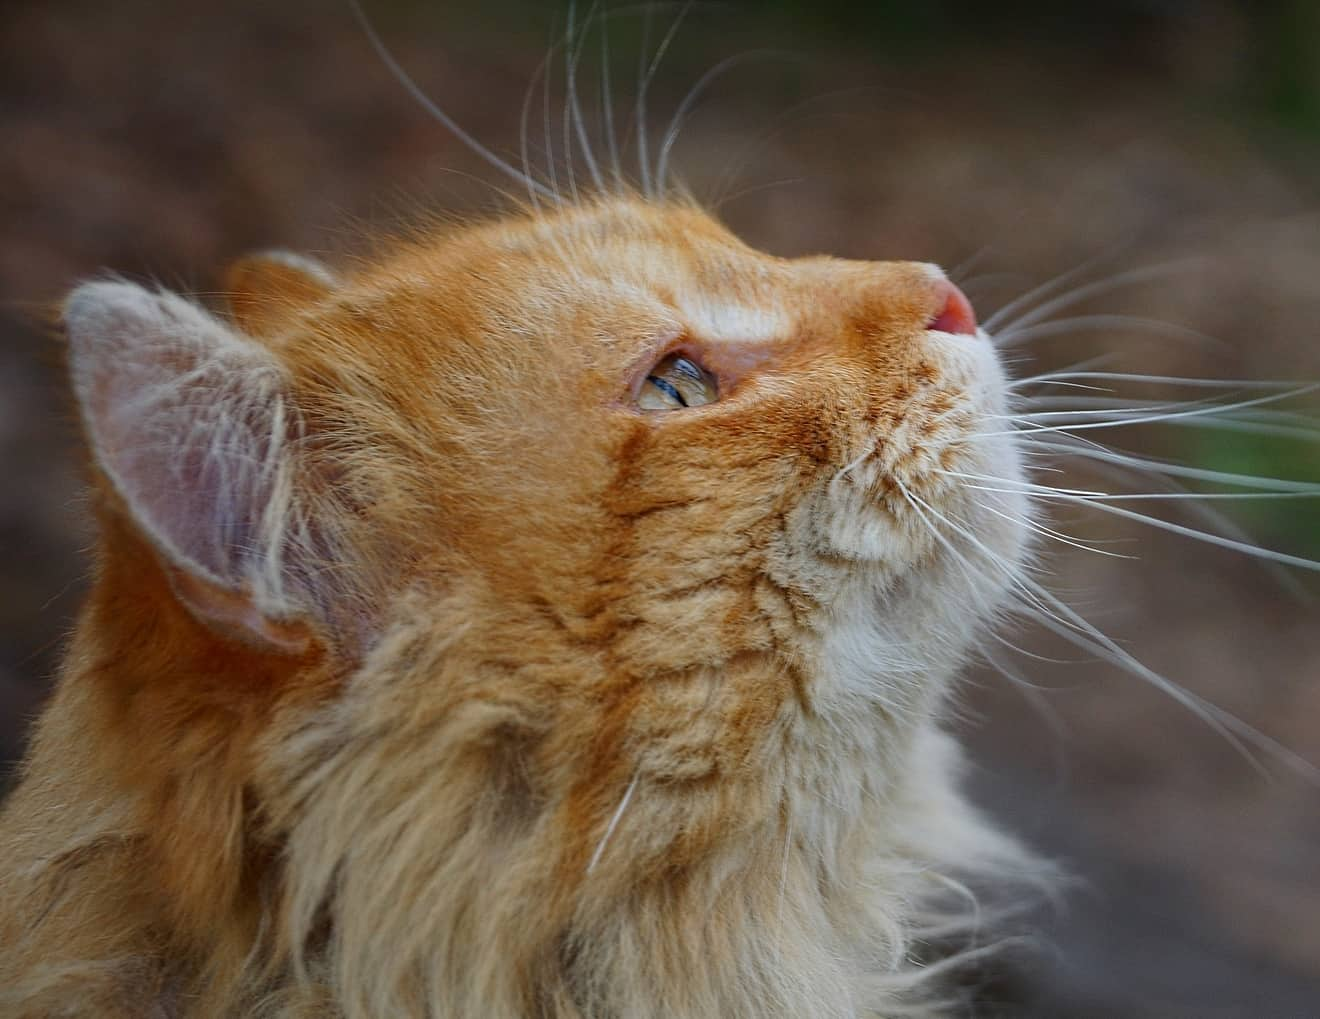 Head of a ginger cat looking up